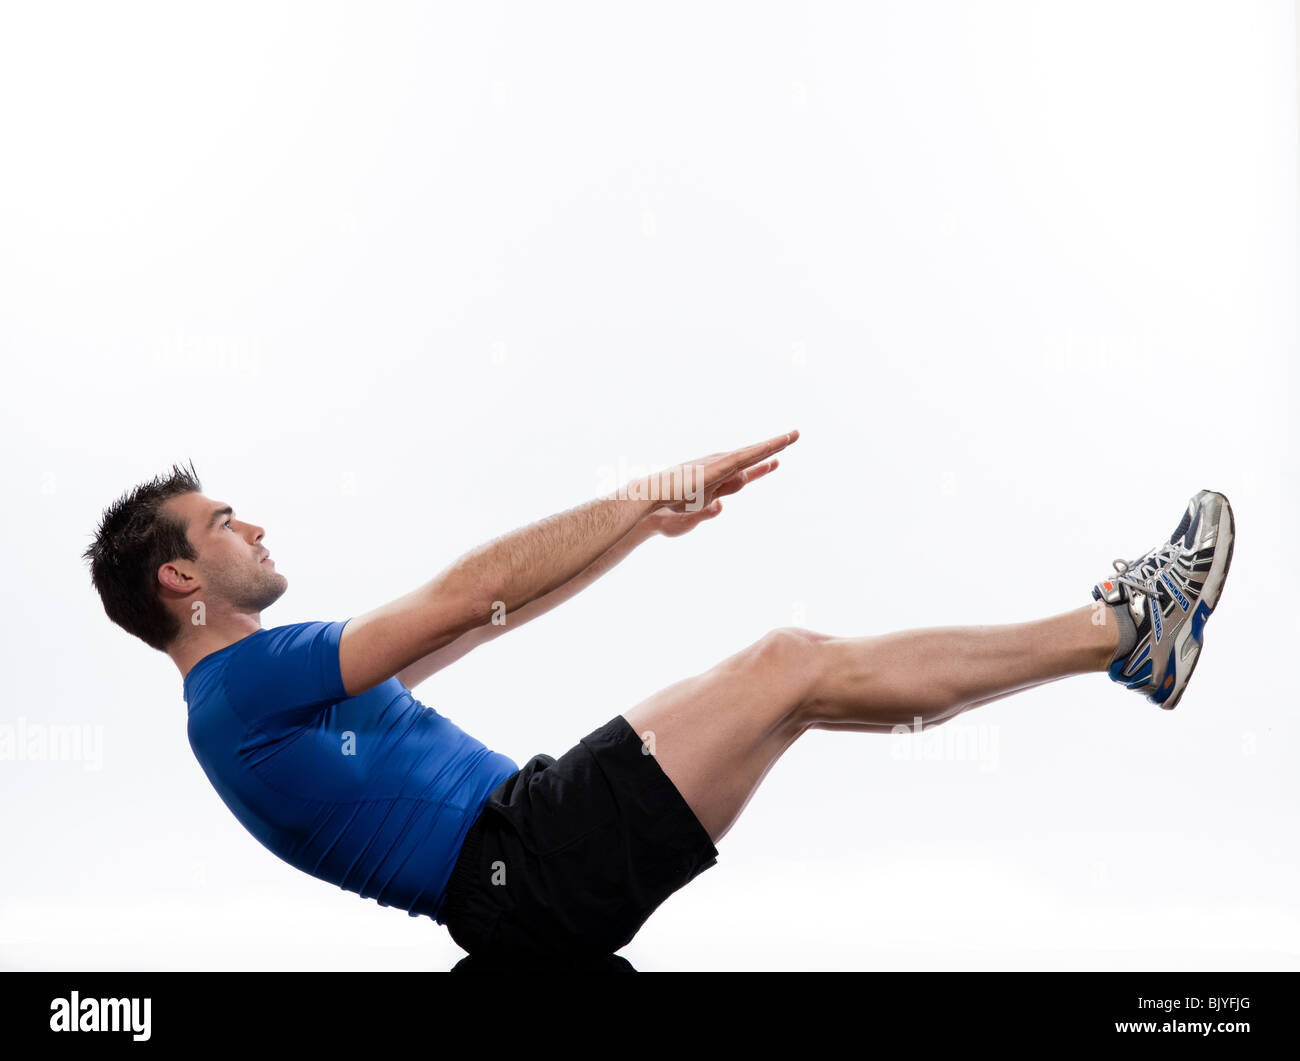 man on Abdominals workout posture on white background. Spice it up. This time bring your thighs to vertical and - Stock Image